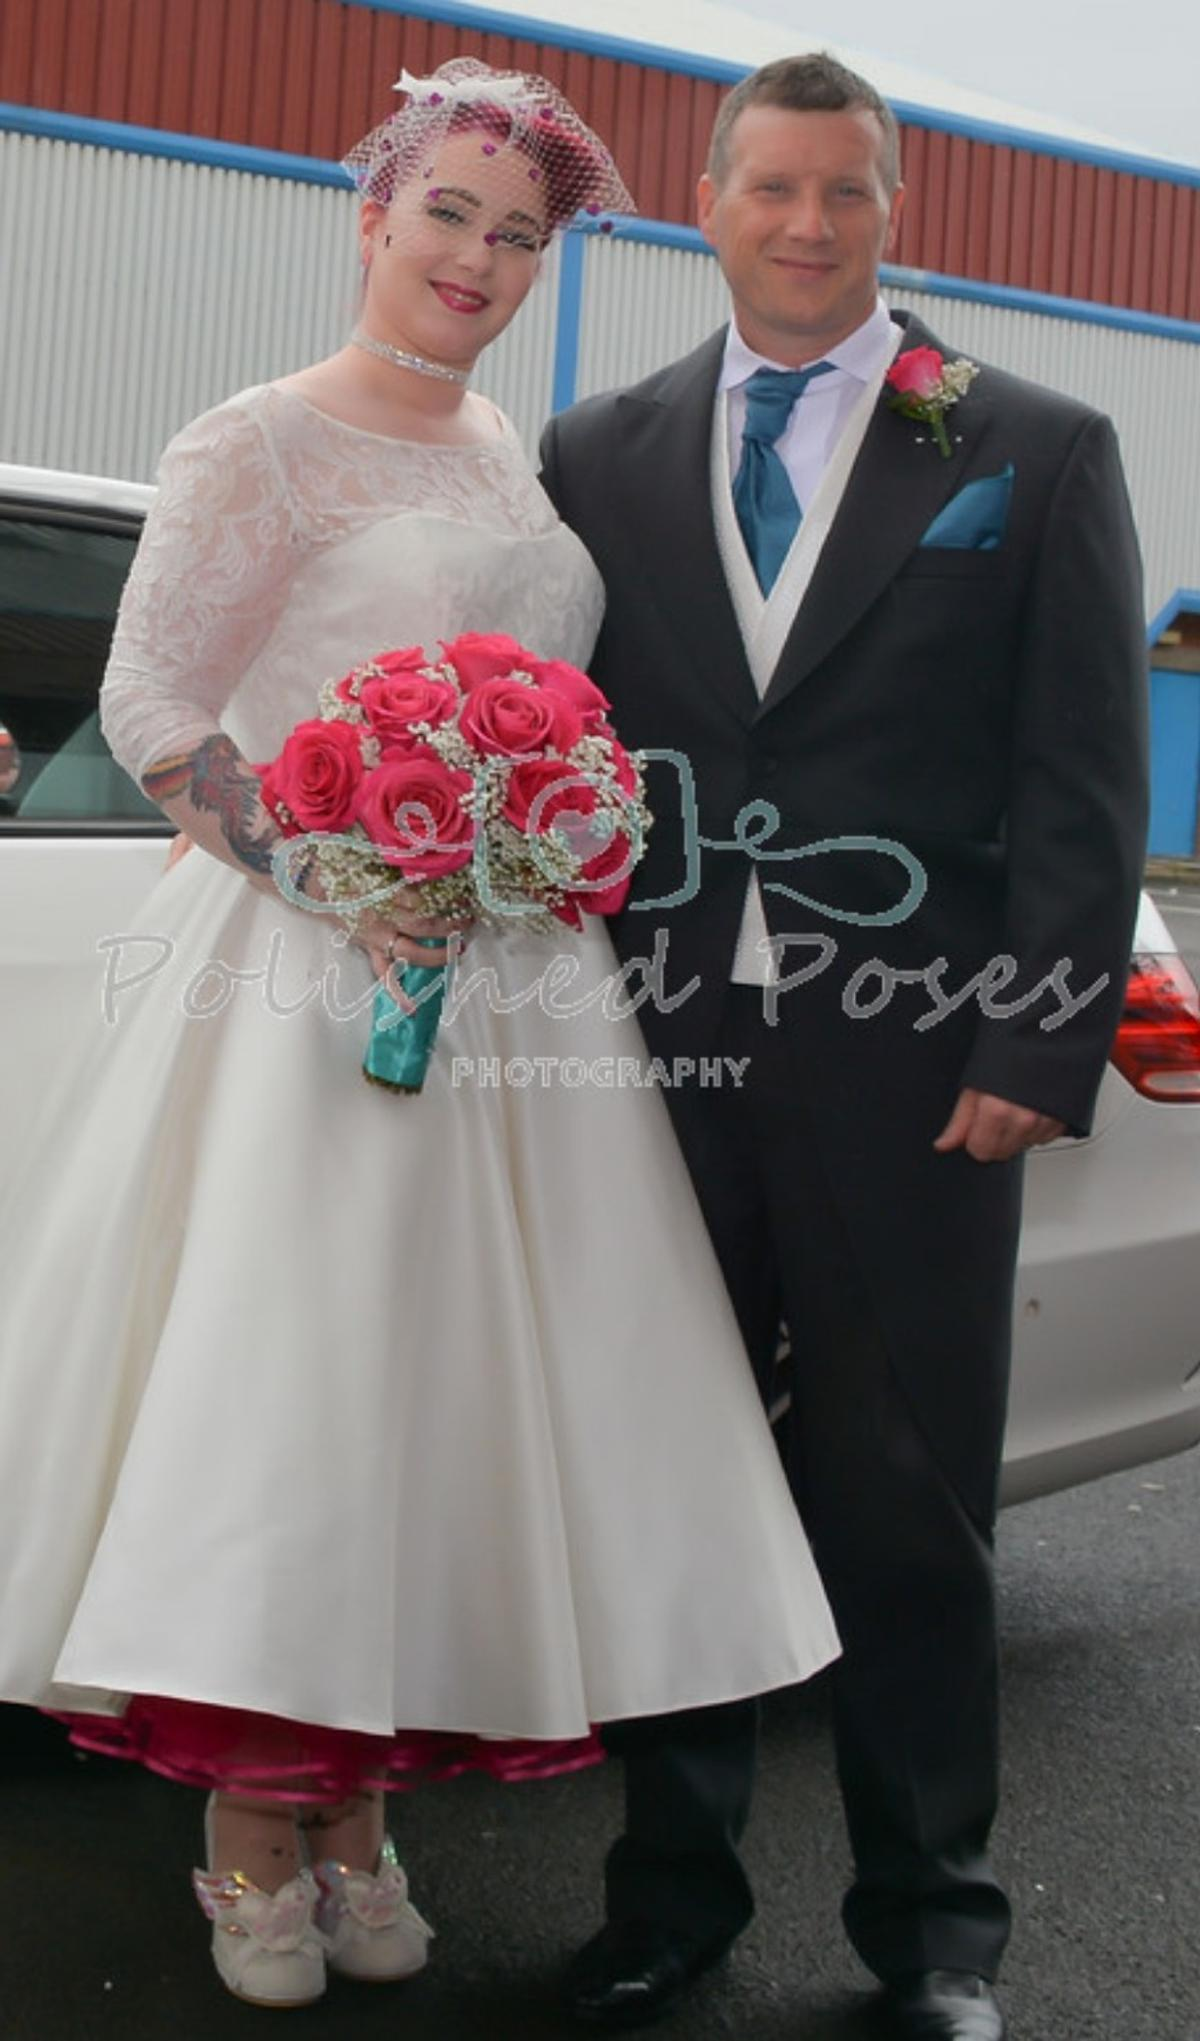 Ivory And Pink Tea Length Wedding Dress In Calderdale For 200 00